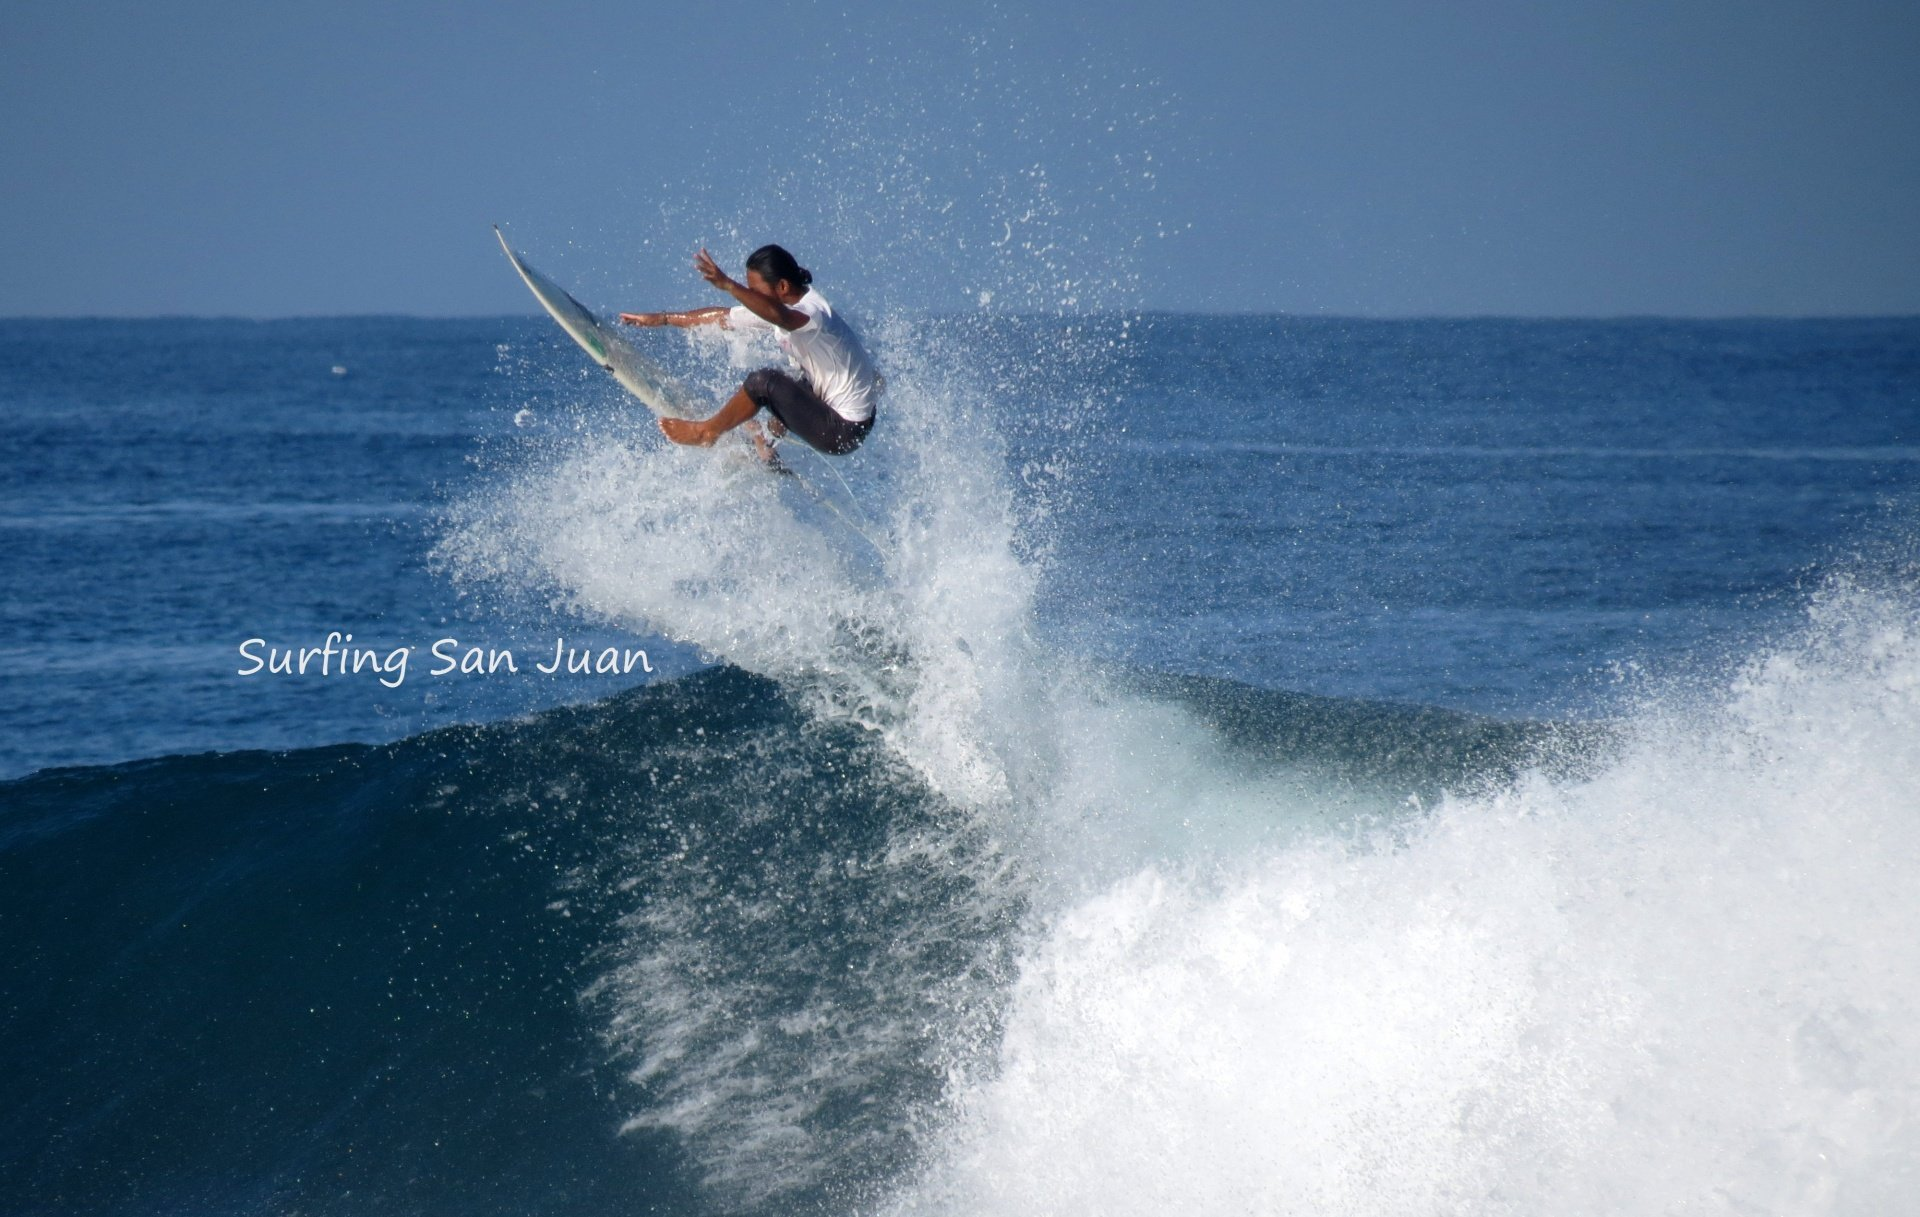 Surfing San Juan's photo of San Juan, La Union